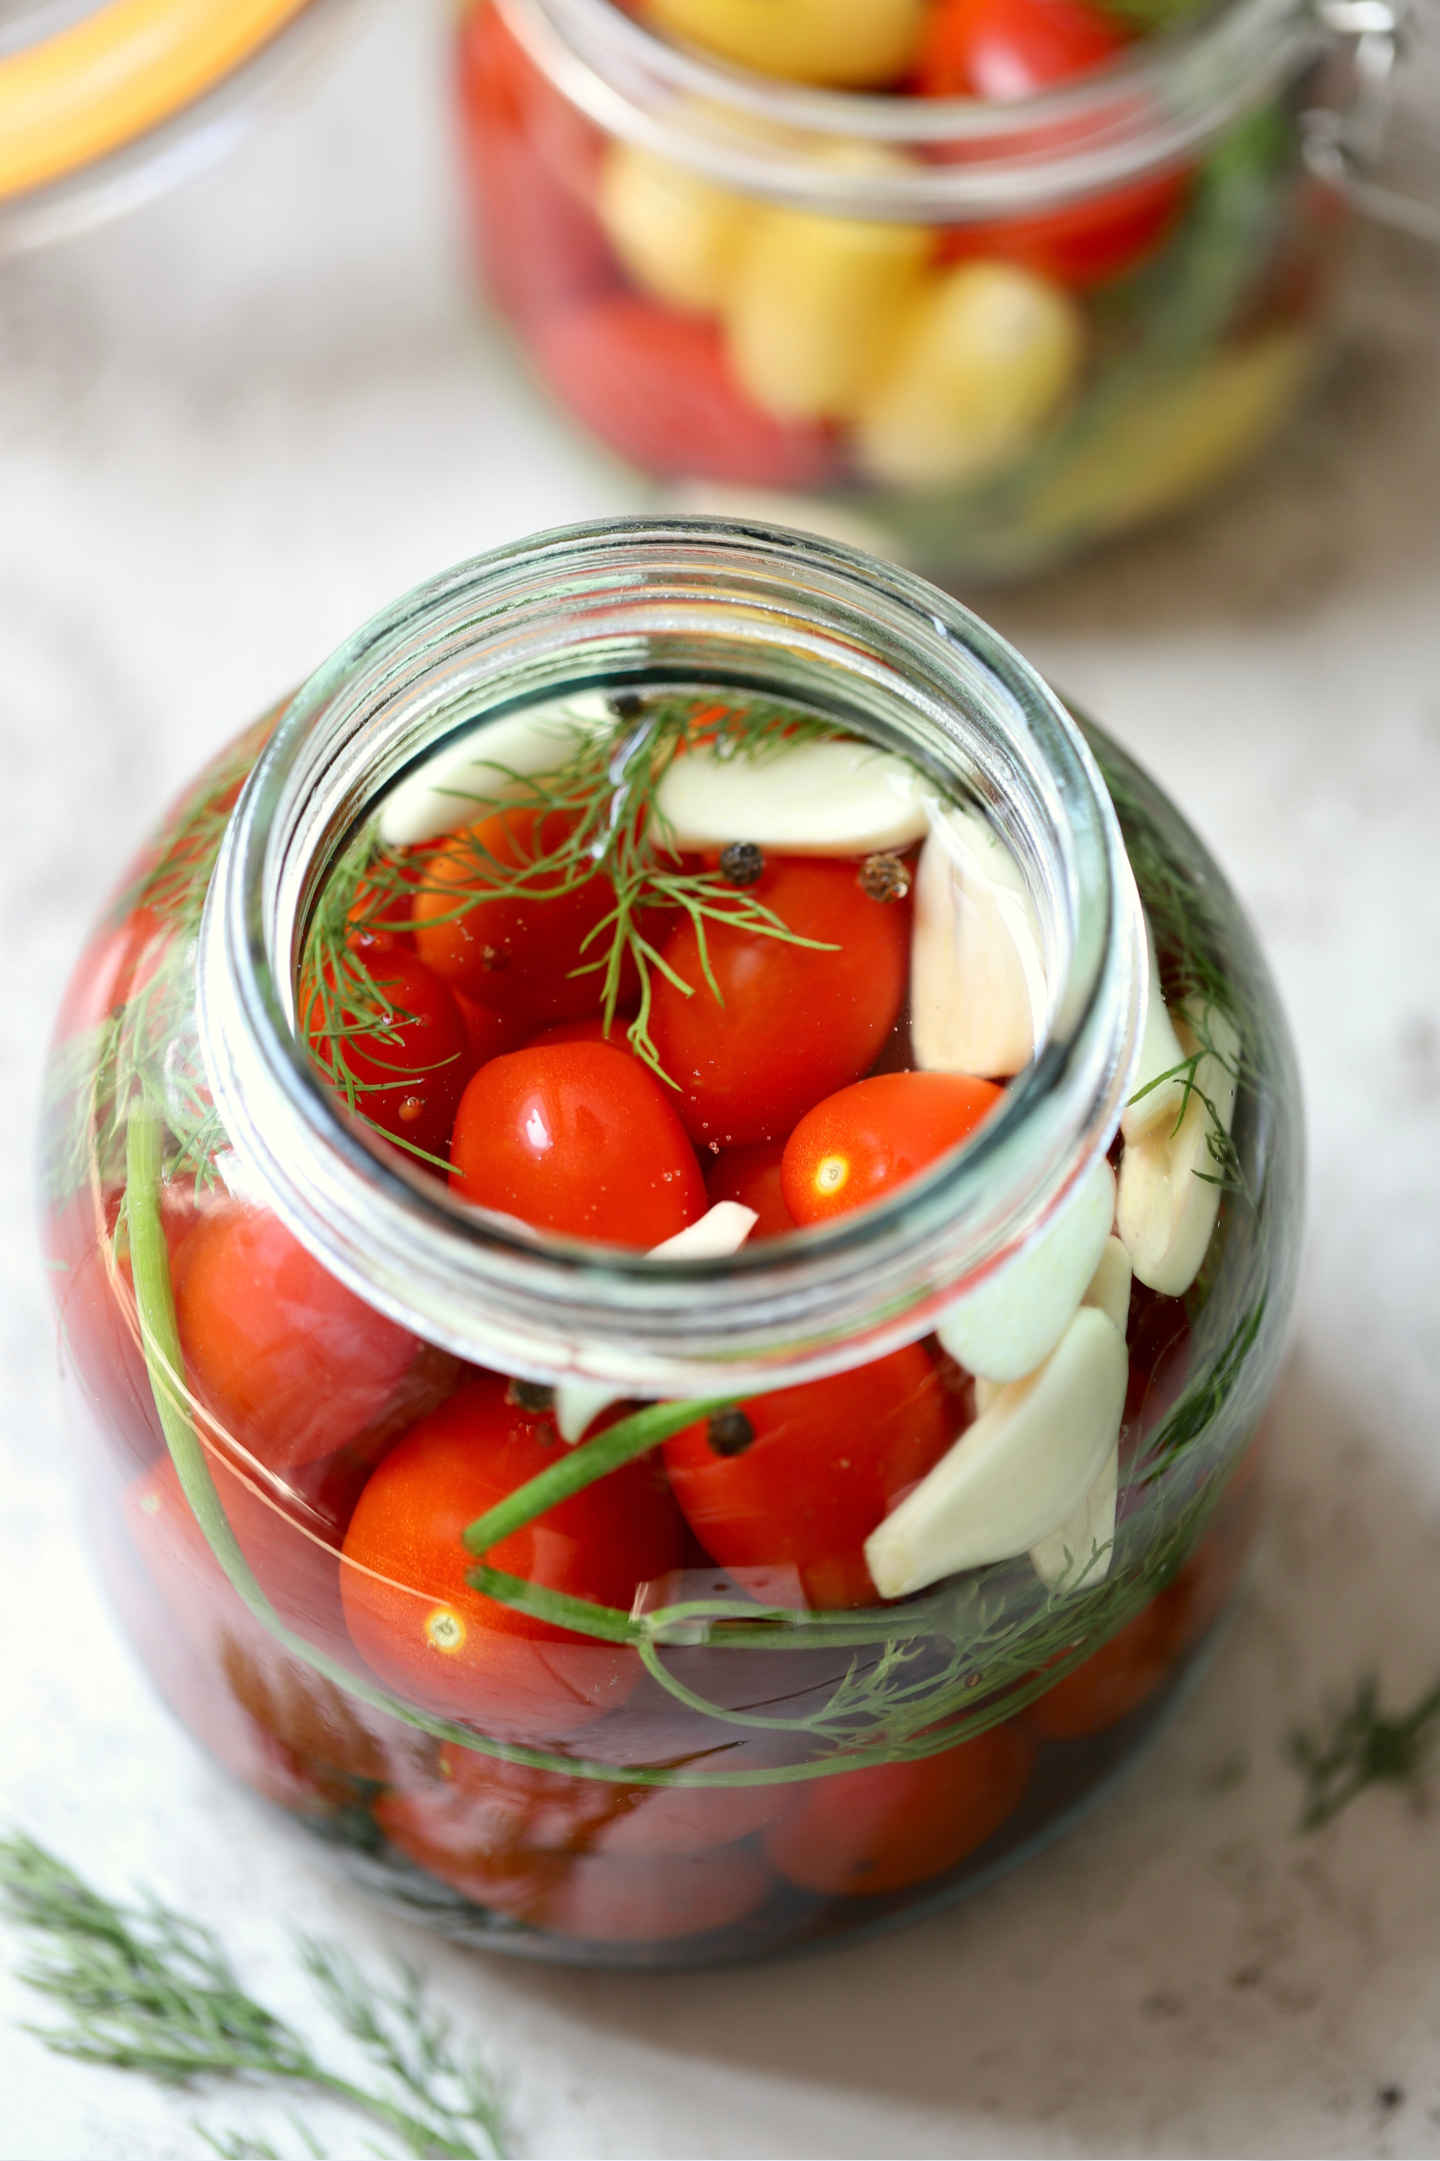 cherry tomatoes in salt brine with garlic, herbs and spices